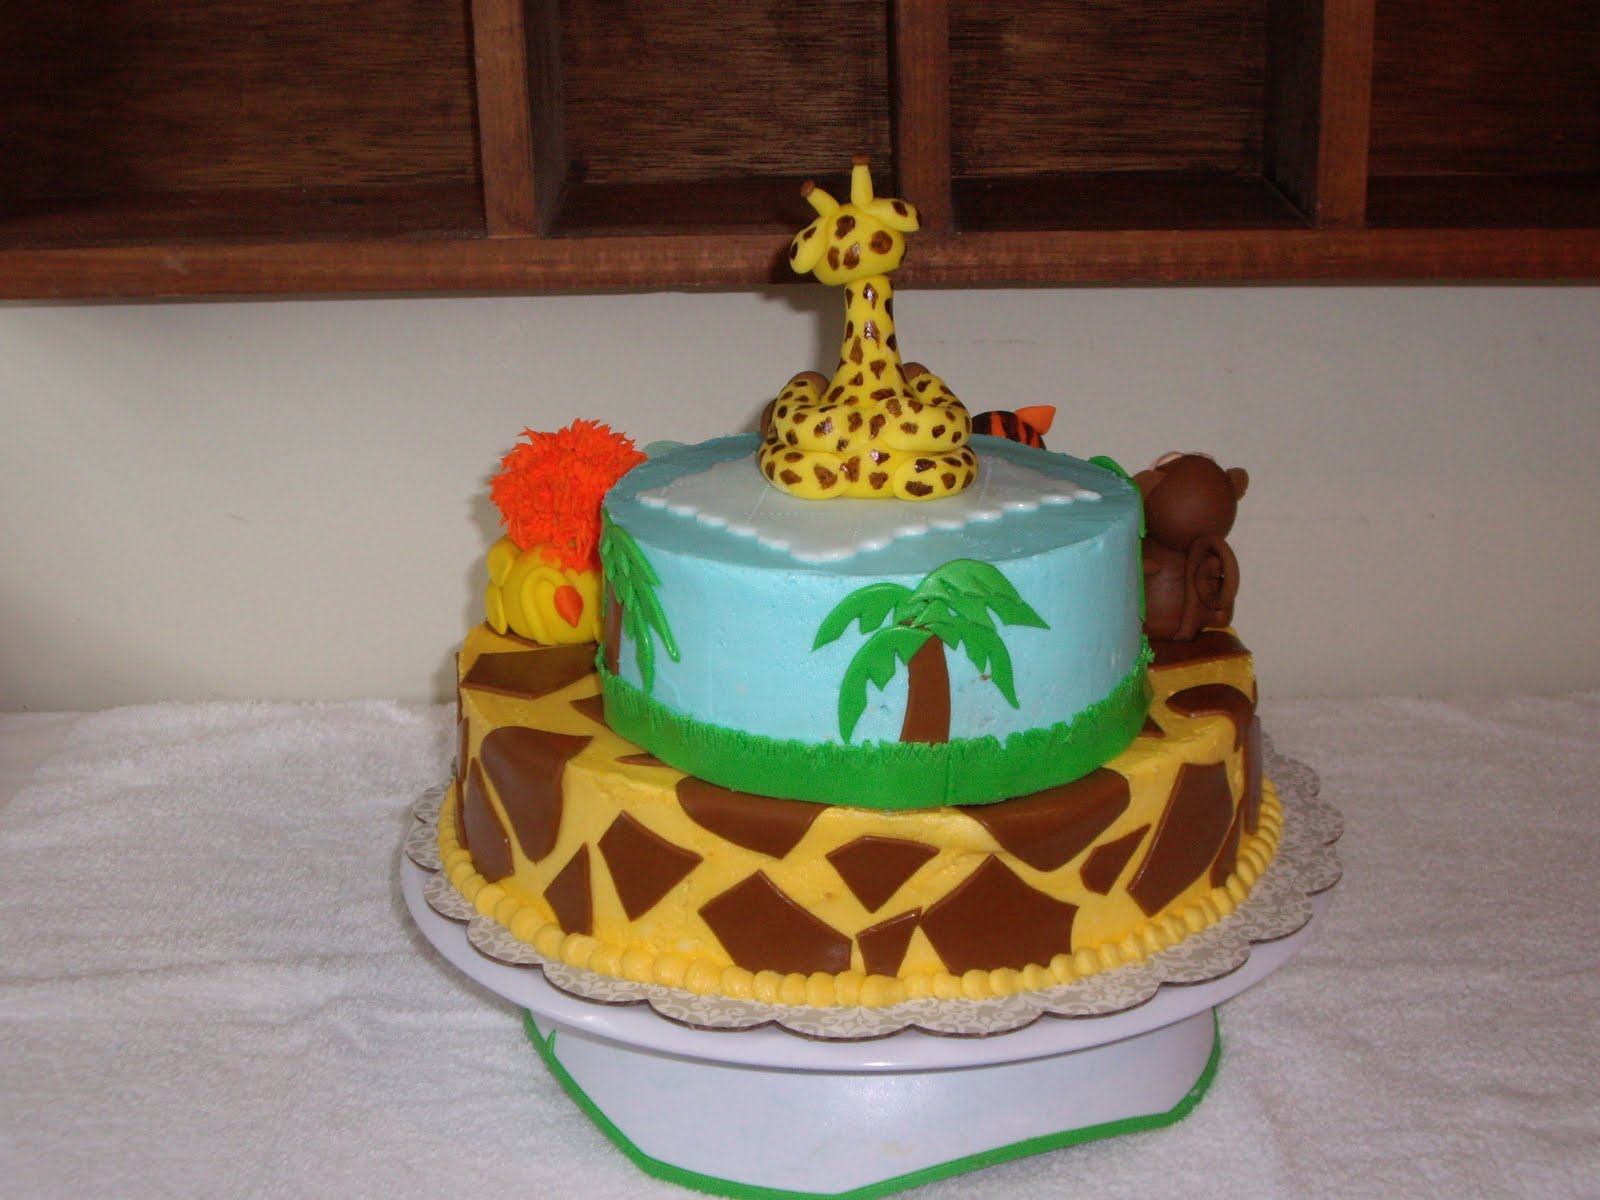 This cake was made for a baby shower that had a jungle animal theme ...